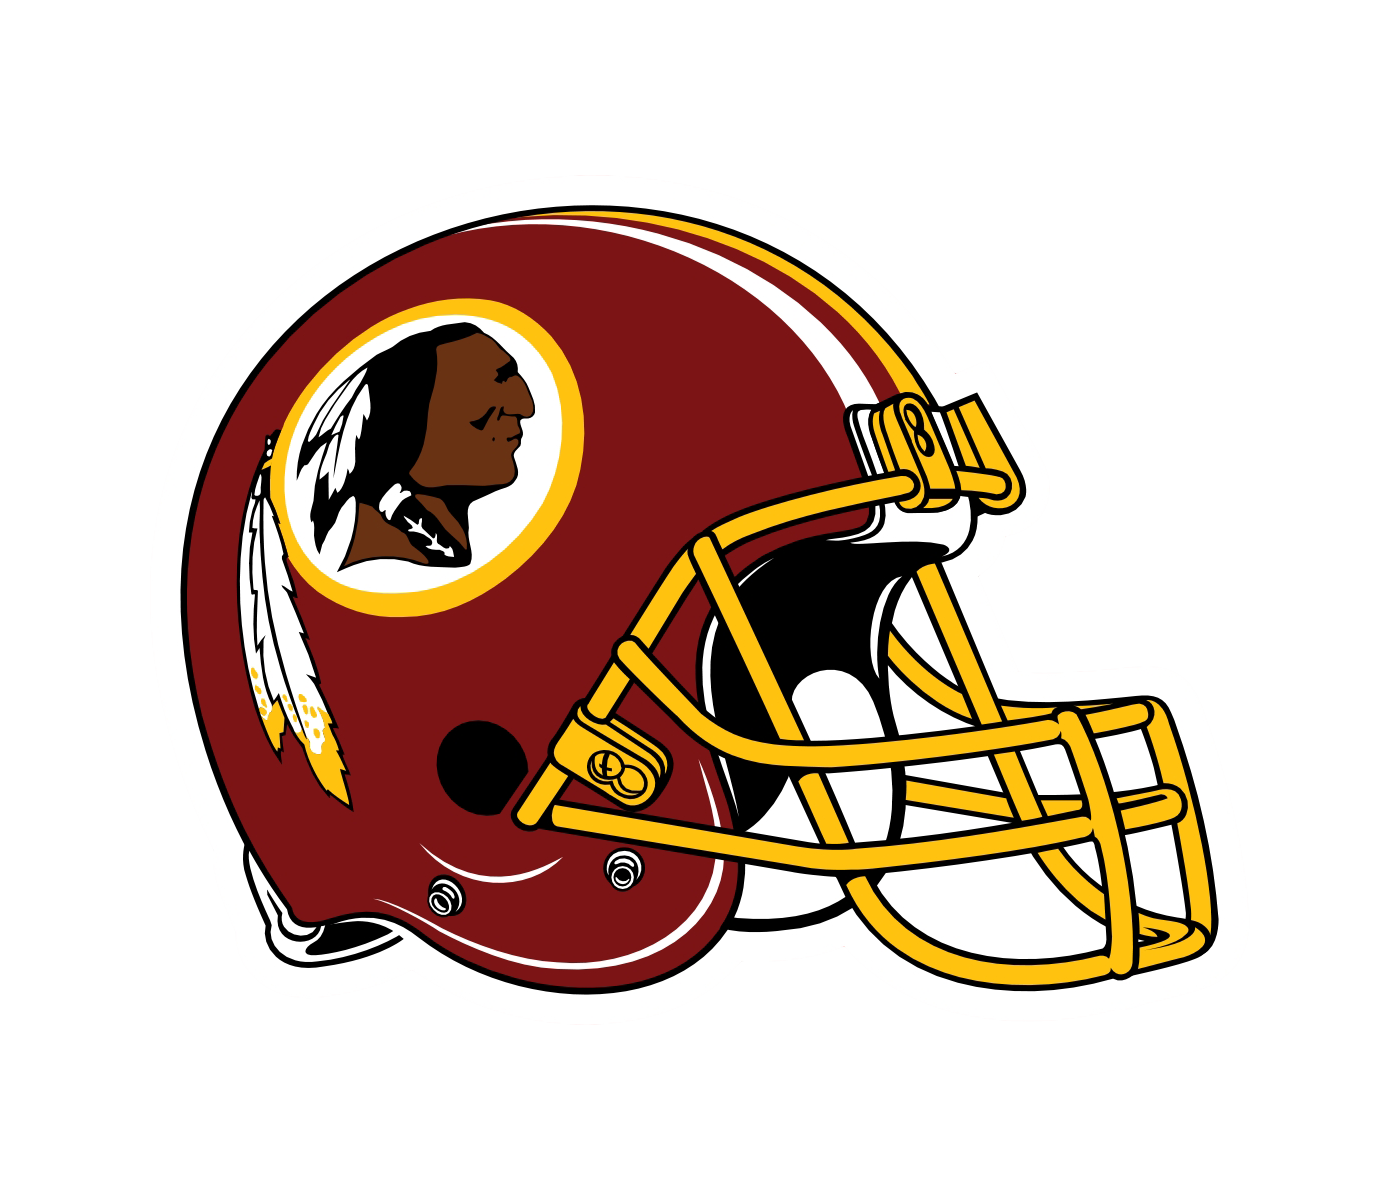 Redskins svg vector. Washington logo png transparent